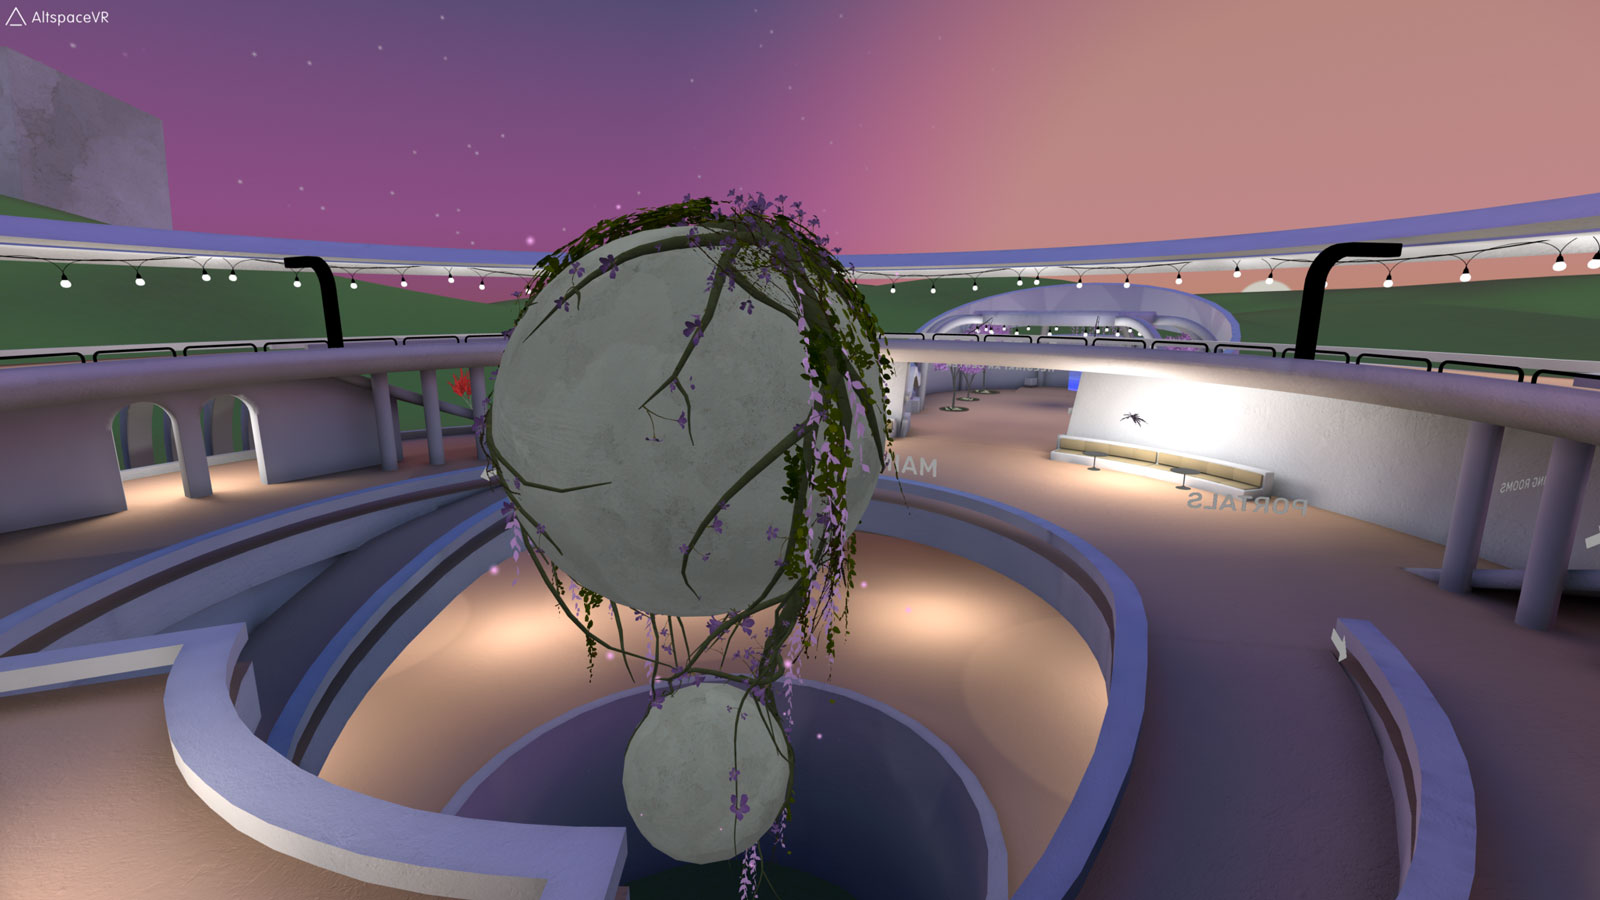 Match XR 2020 virtual event venue, VR Pavilion Finland's main hub, with a big stone-looking ball sculpture covered in blooming vines.